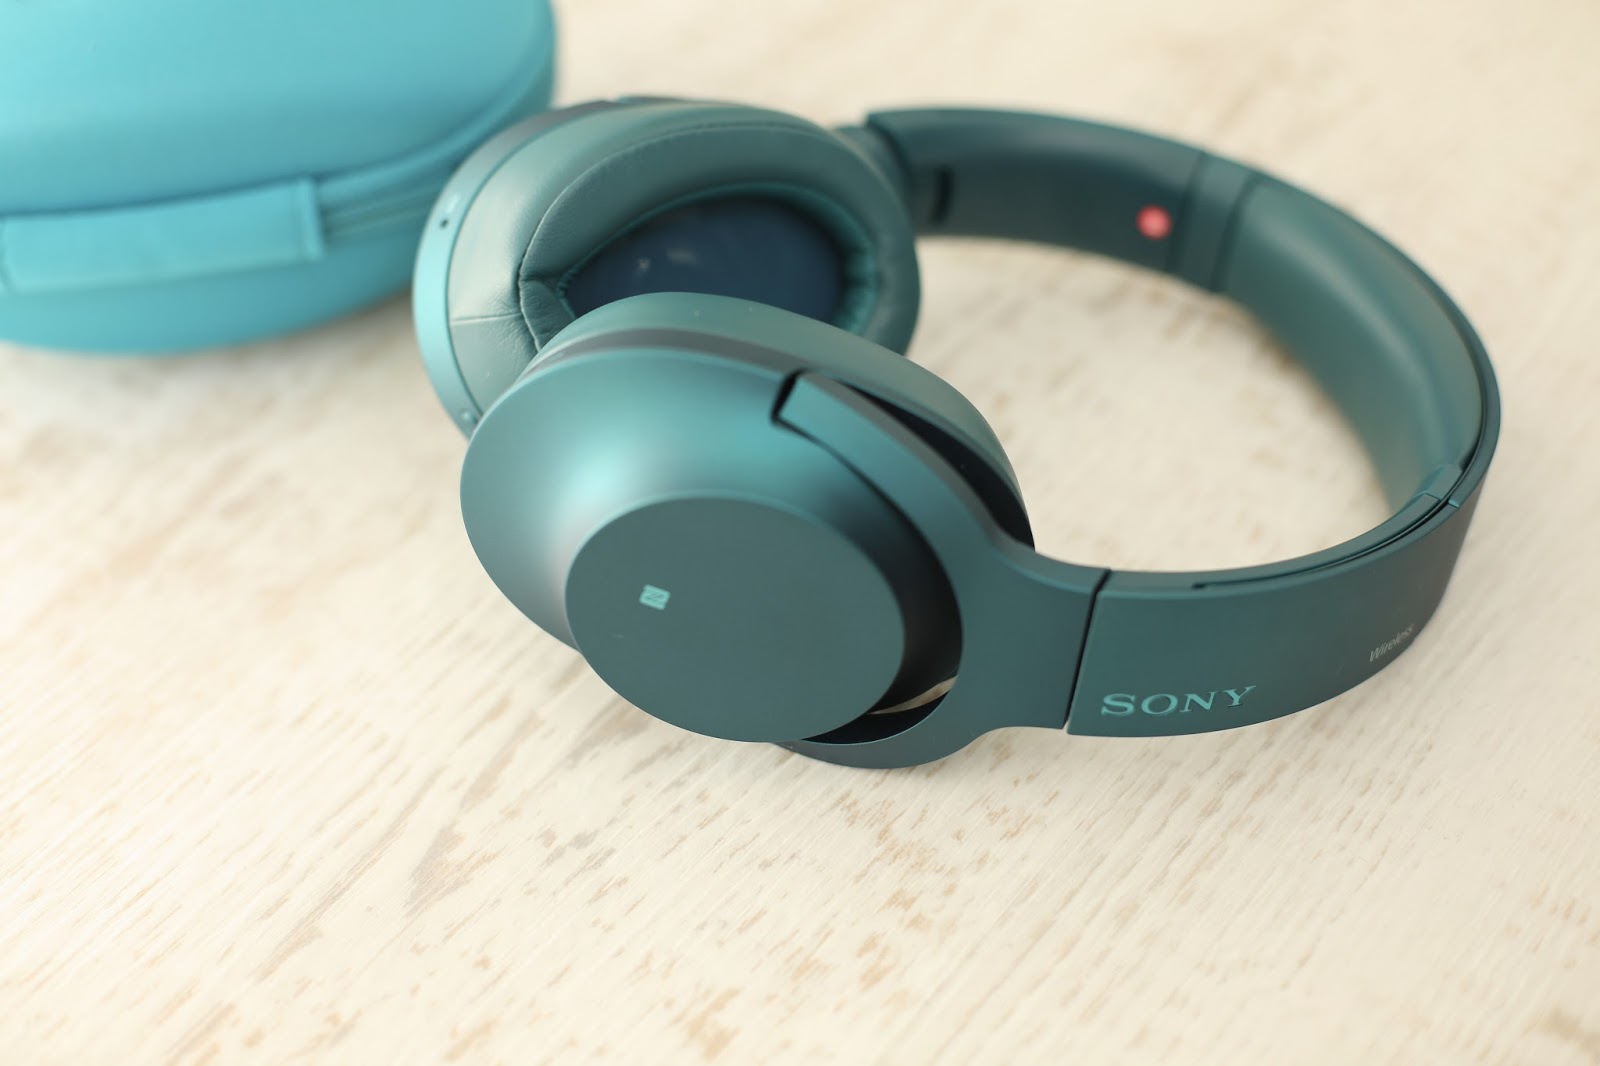 sony h.ear headphones